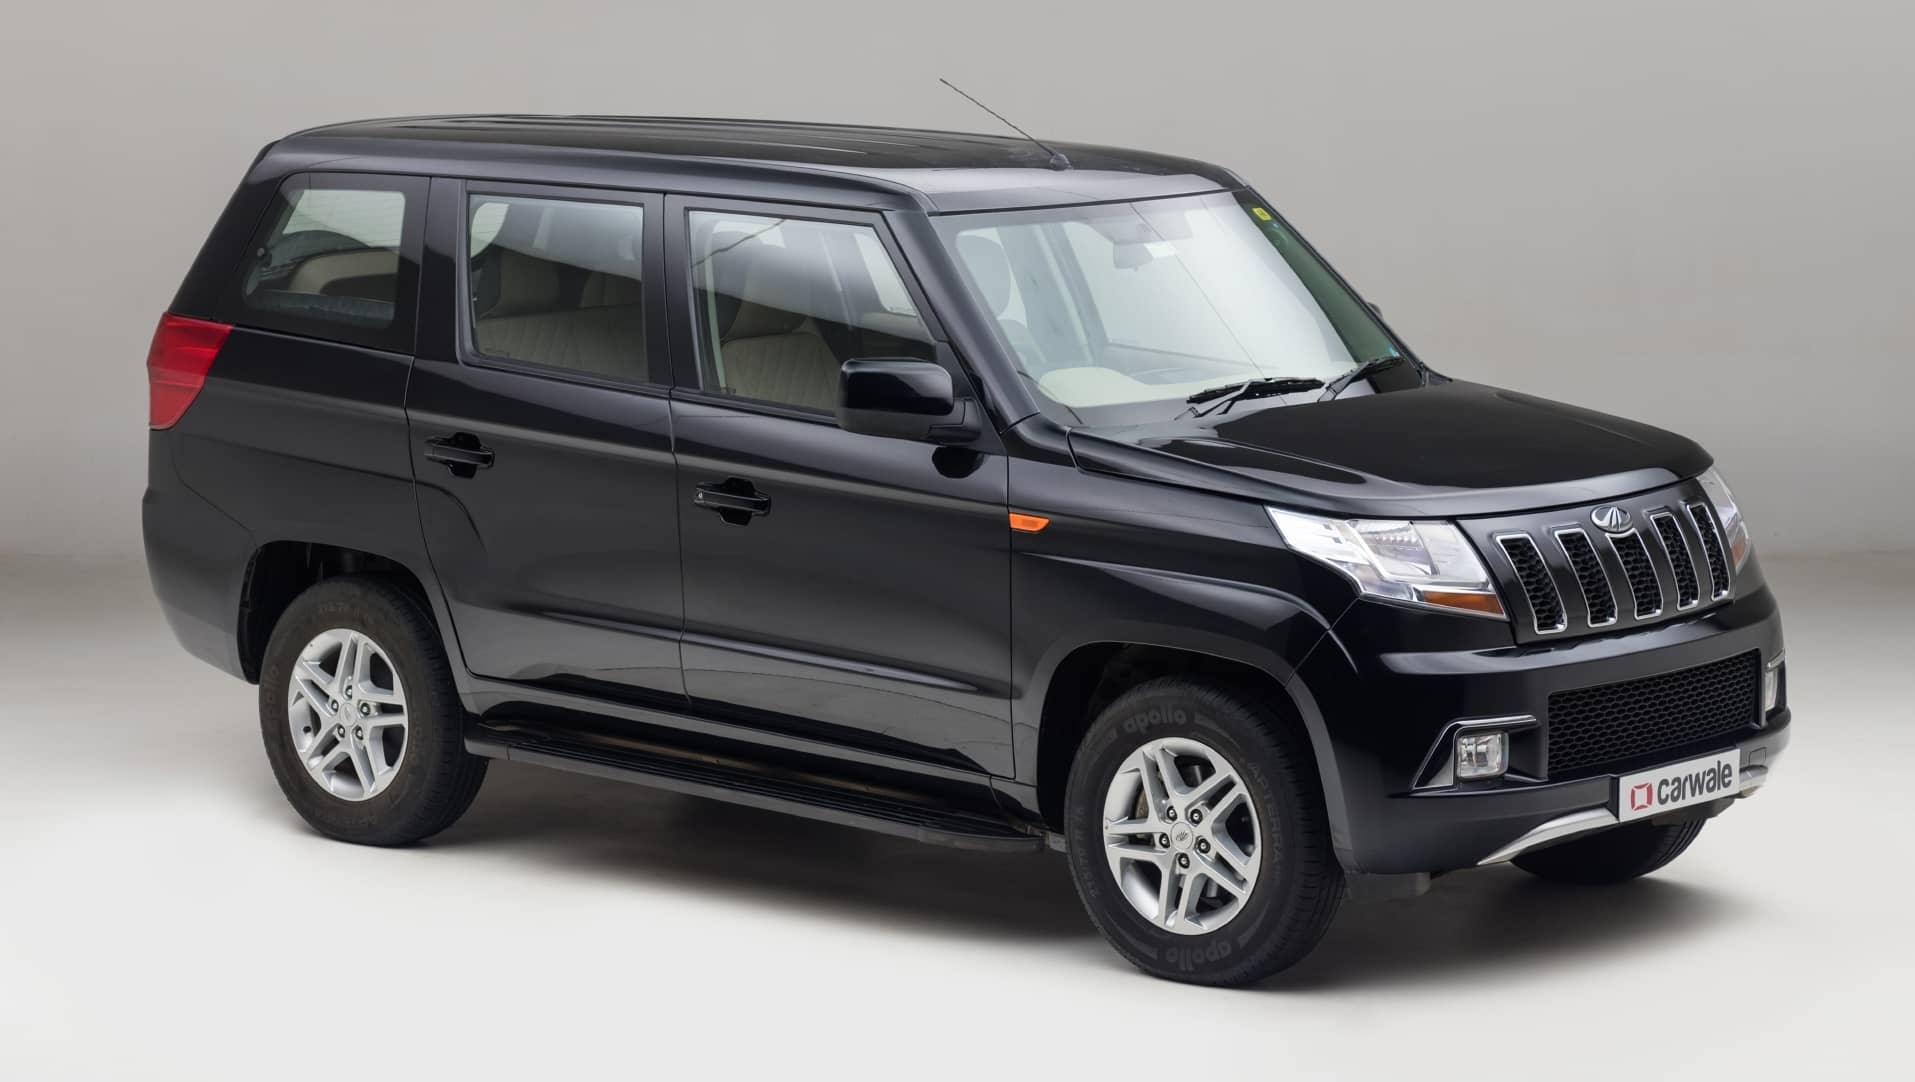 Top 9/10 Seater Vehicles in India: List of 9/10 Seater Cars in India